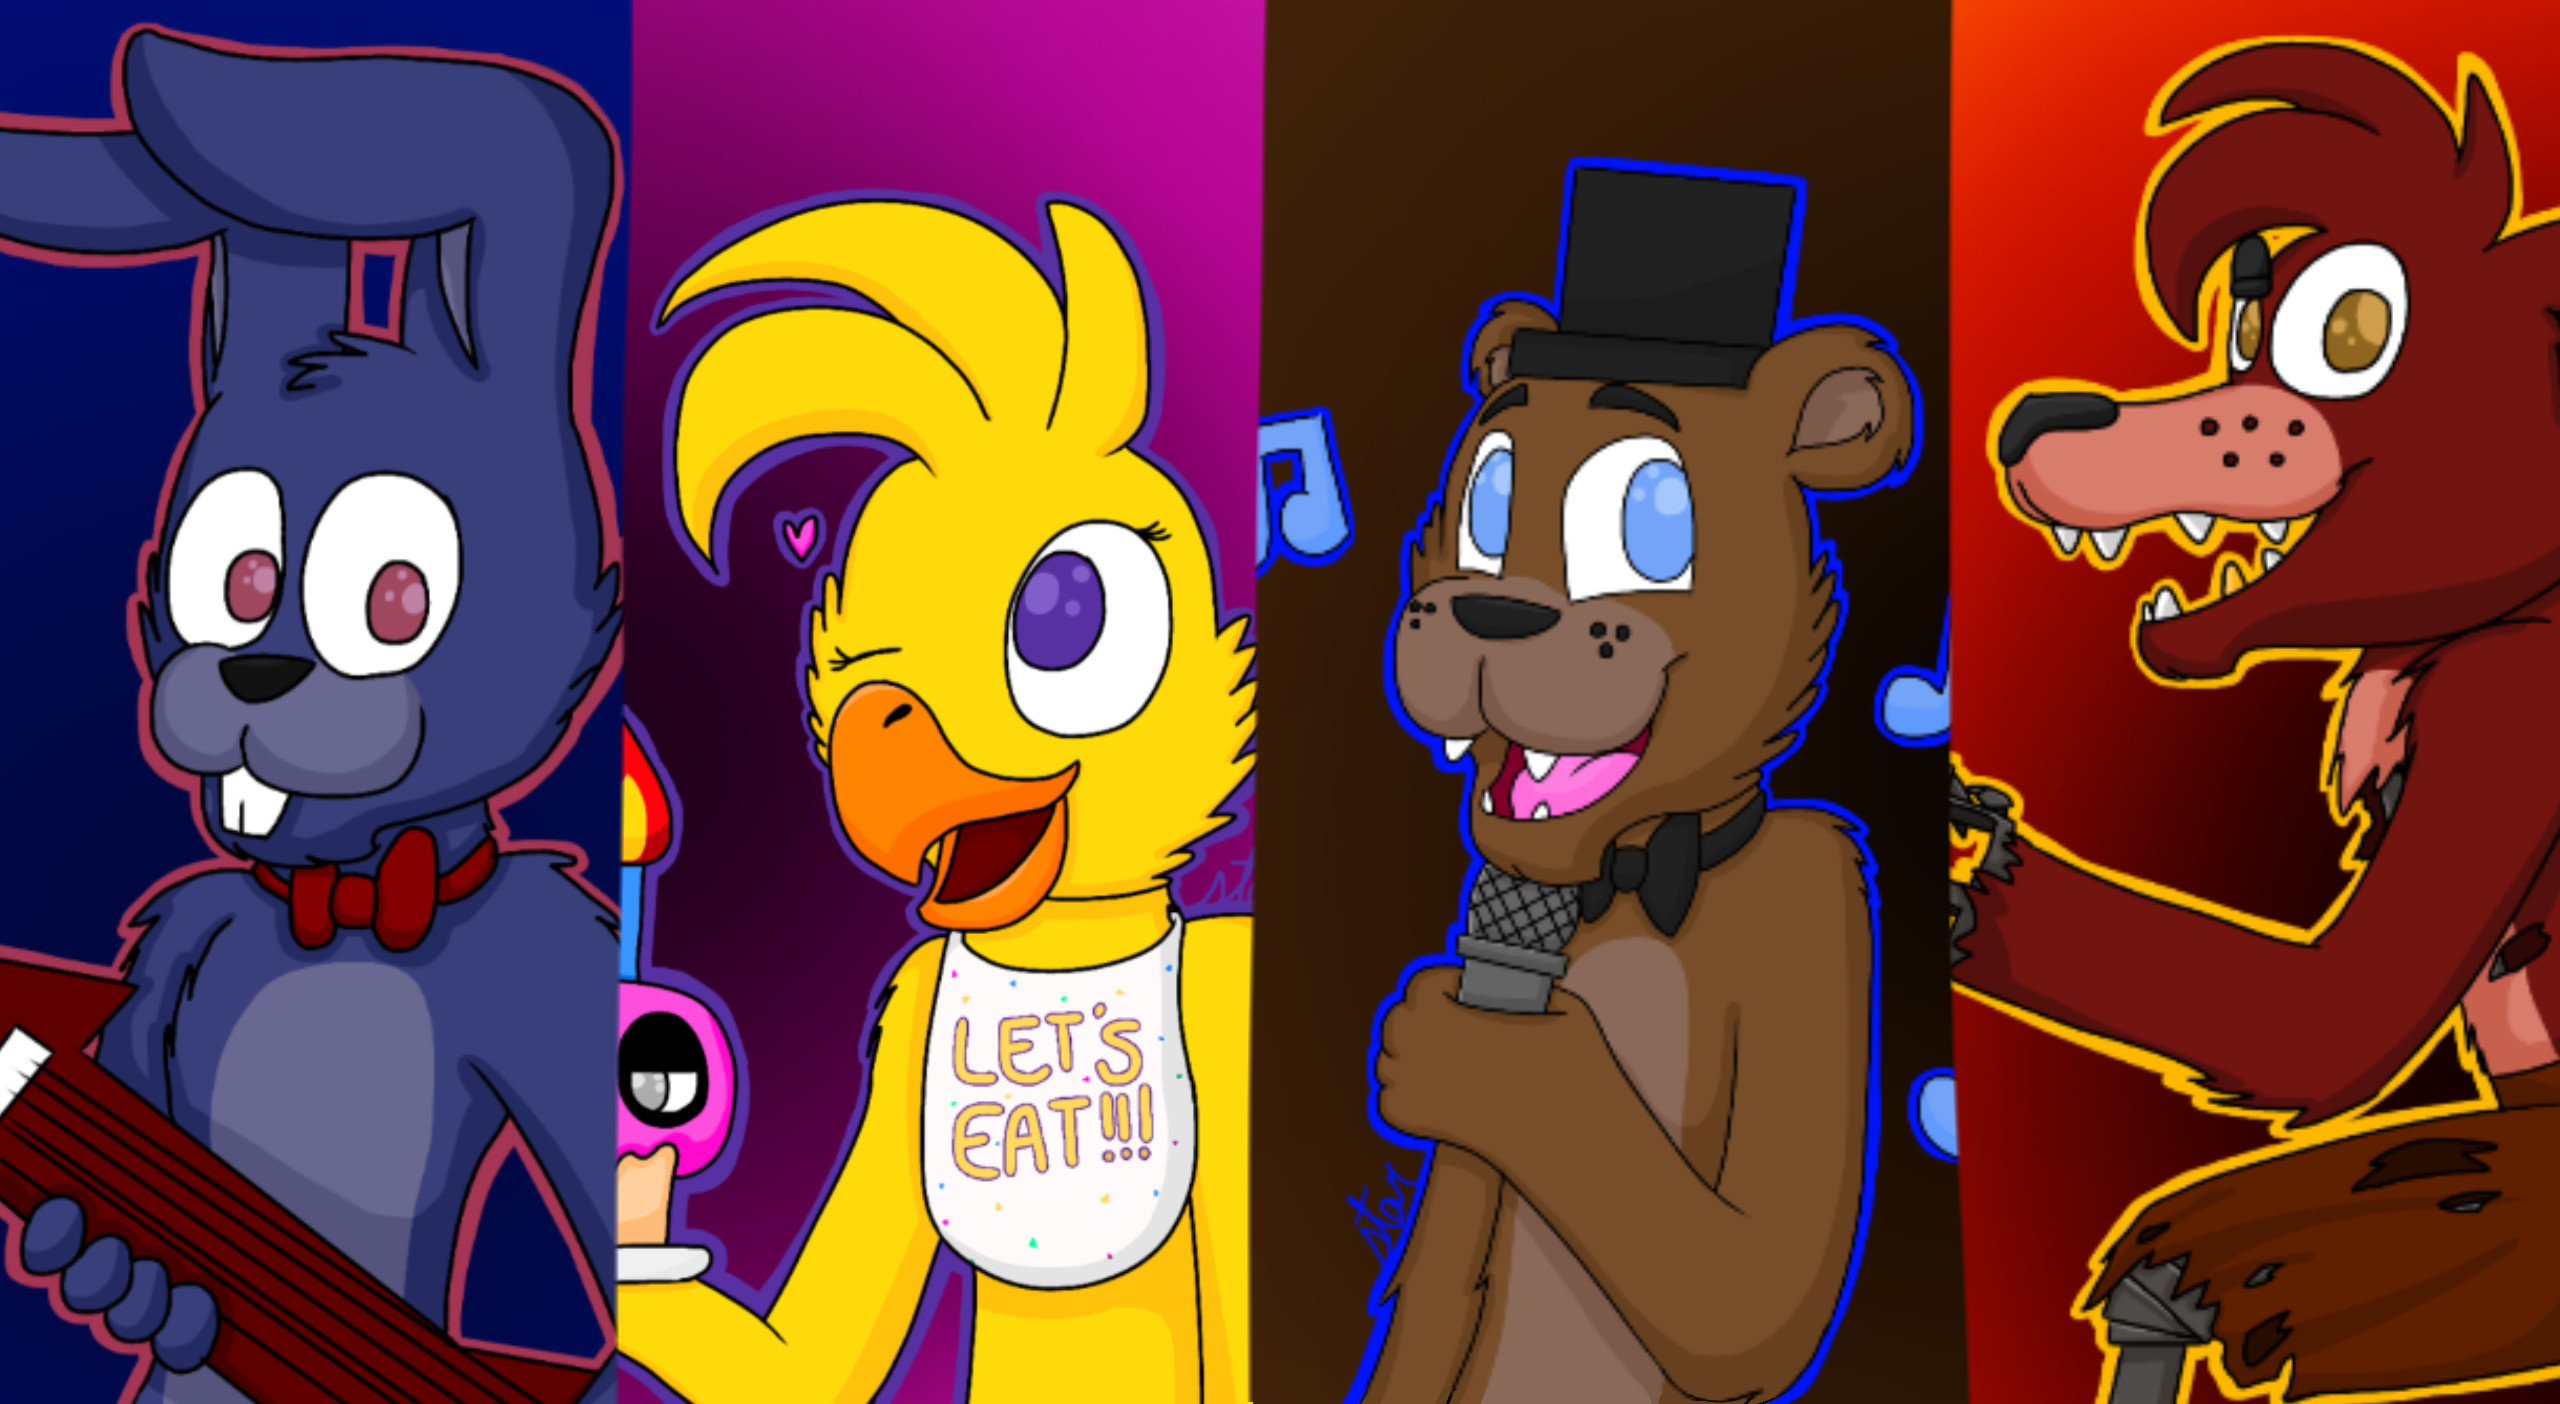 Res: 2560x1404, ... FNAF 1 PosterWallpaper by StarredShadow